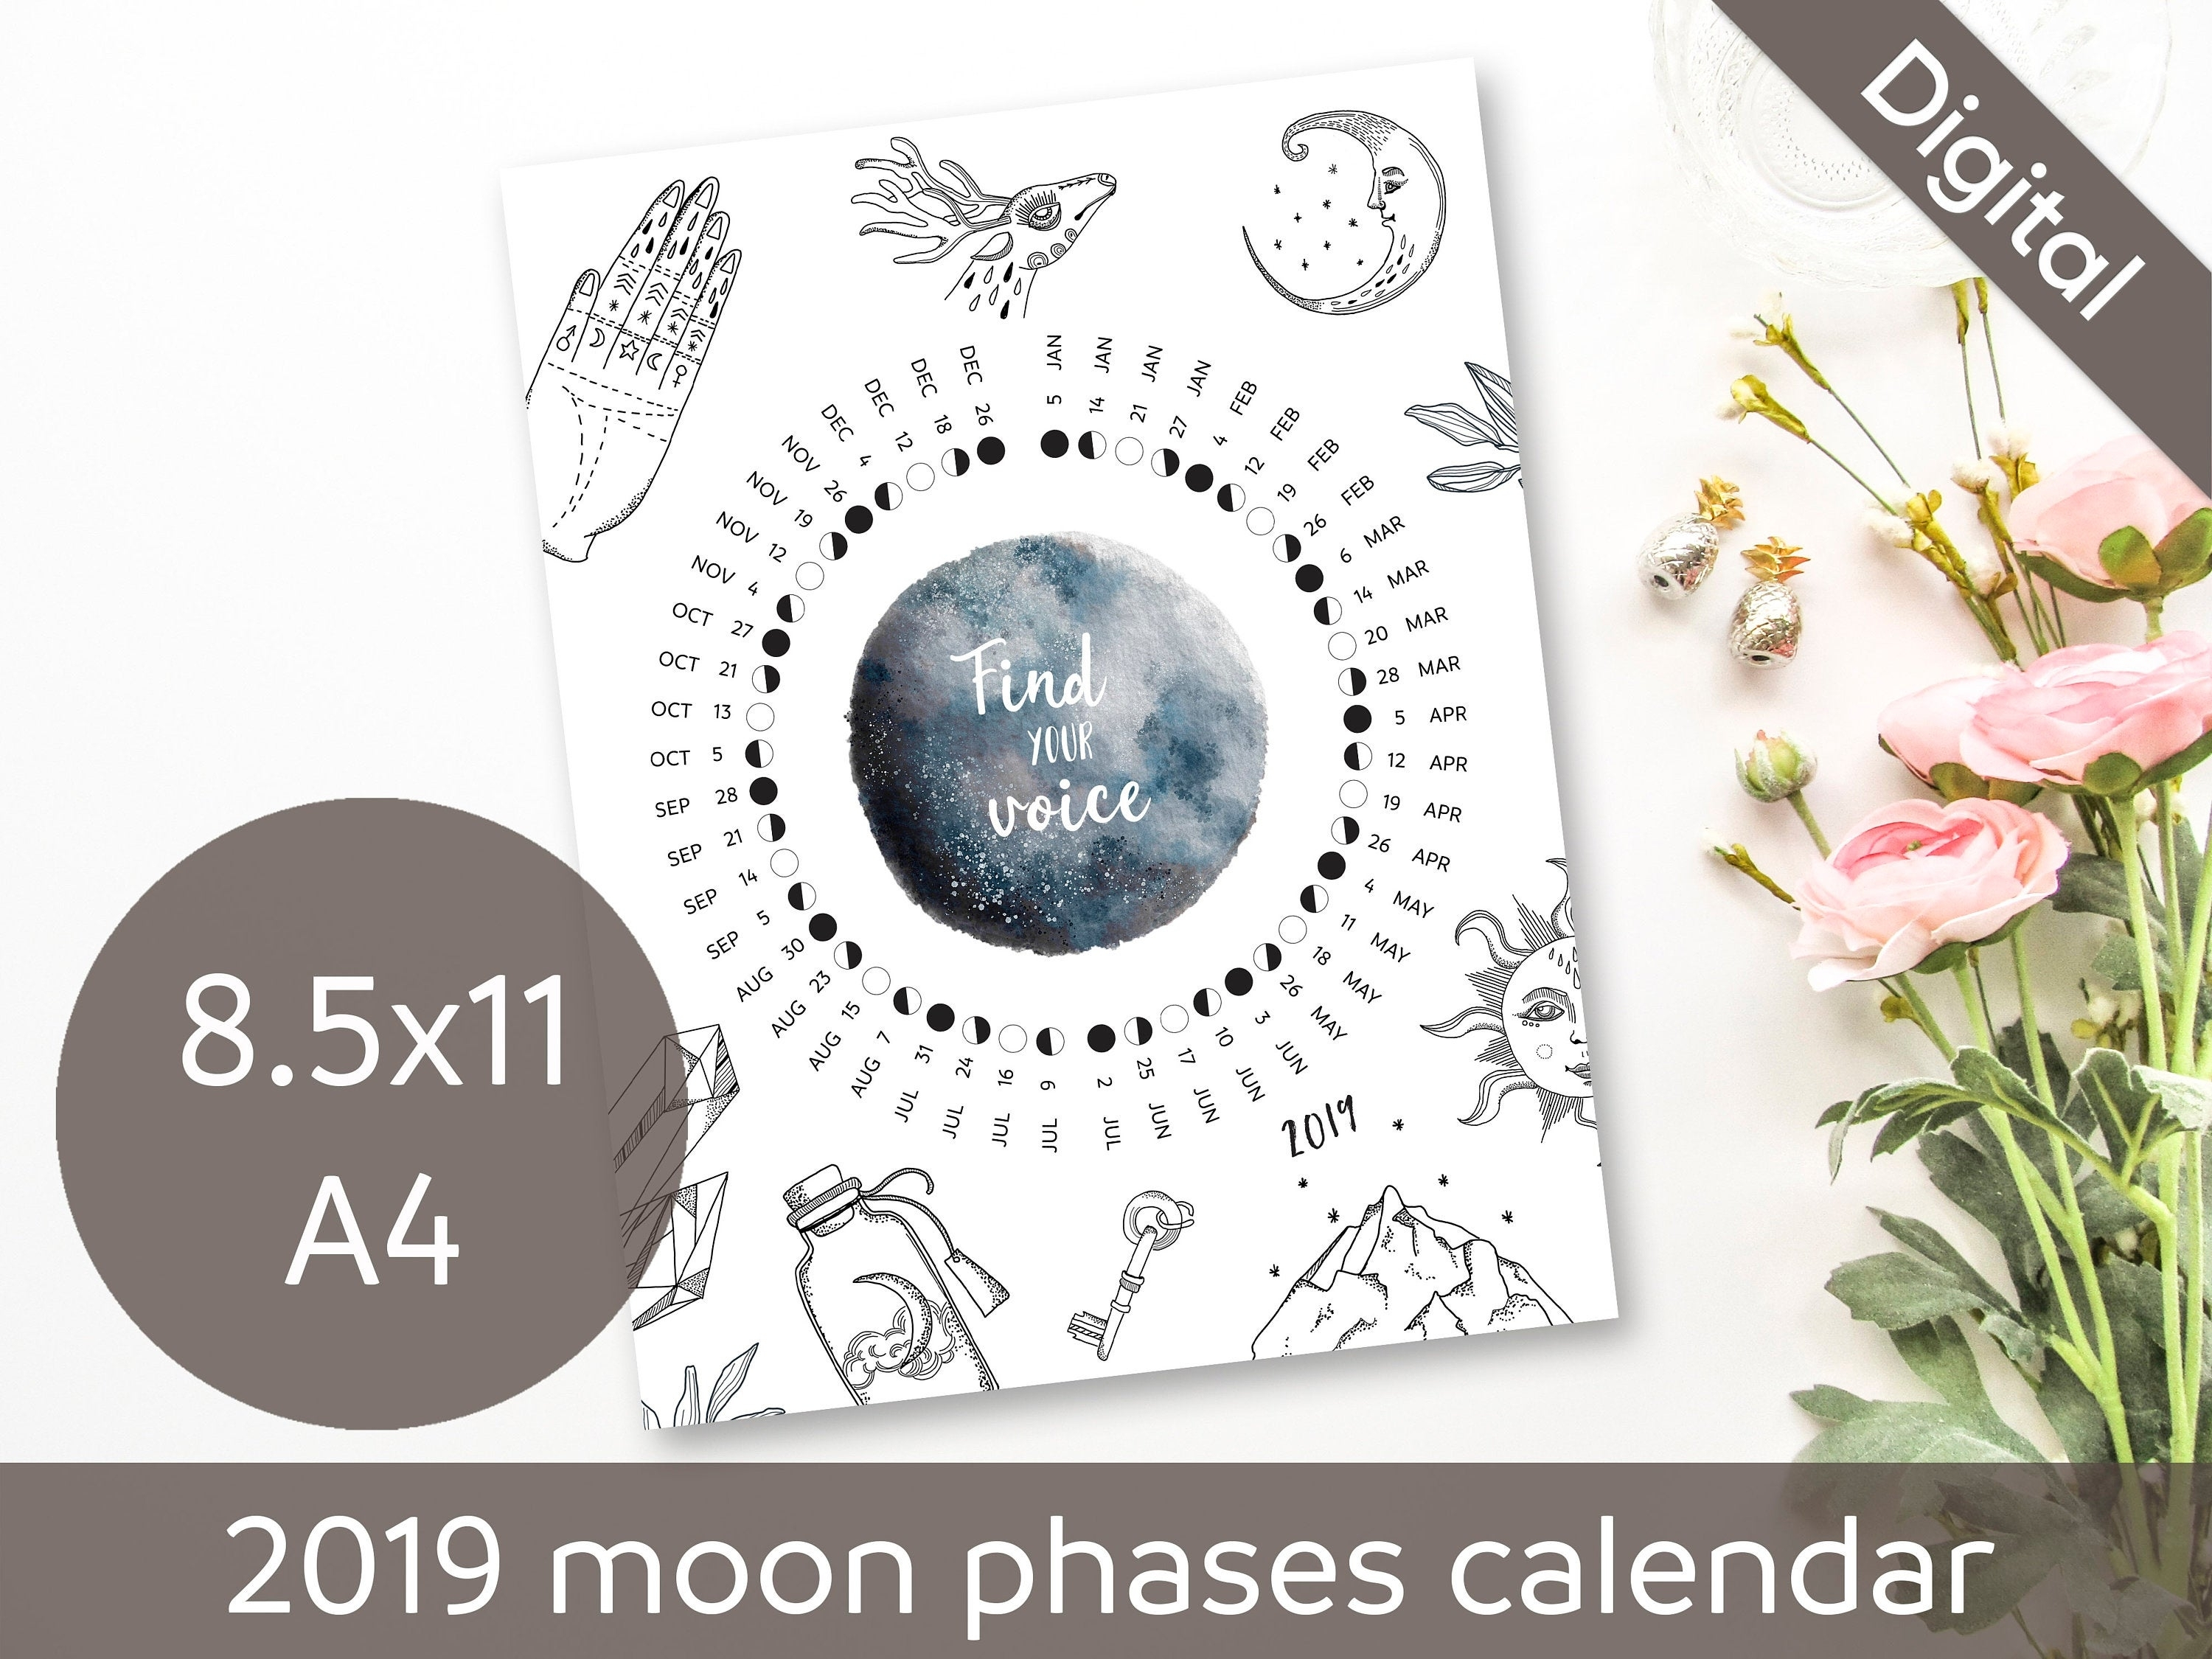 Printable 2019 Moon Phases Calendar, Full Moon, New Moon, Usa & Europe Time  Zones, Whimsical, Desk, Wall, A4, Letter, Pdf Instant Download